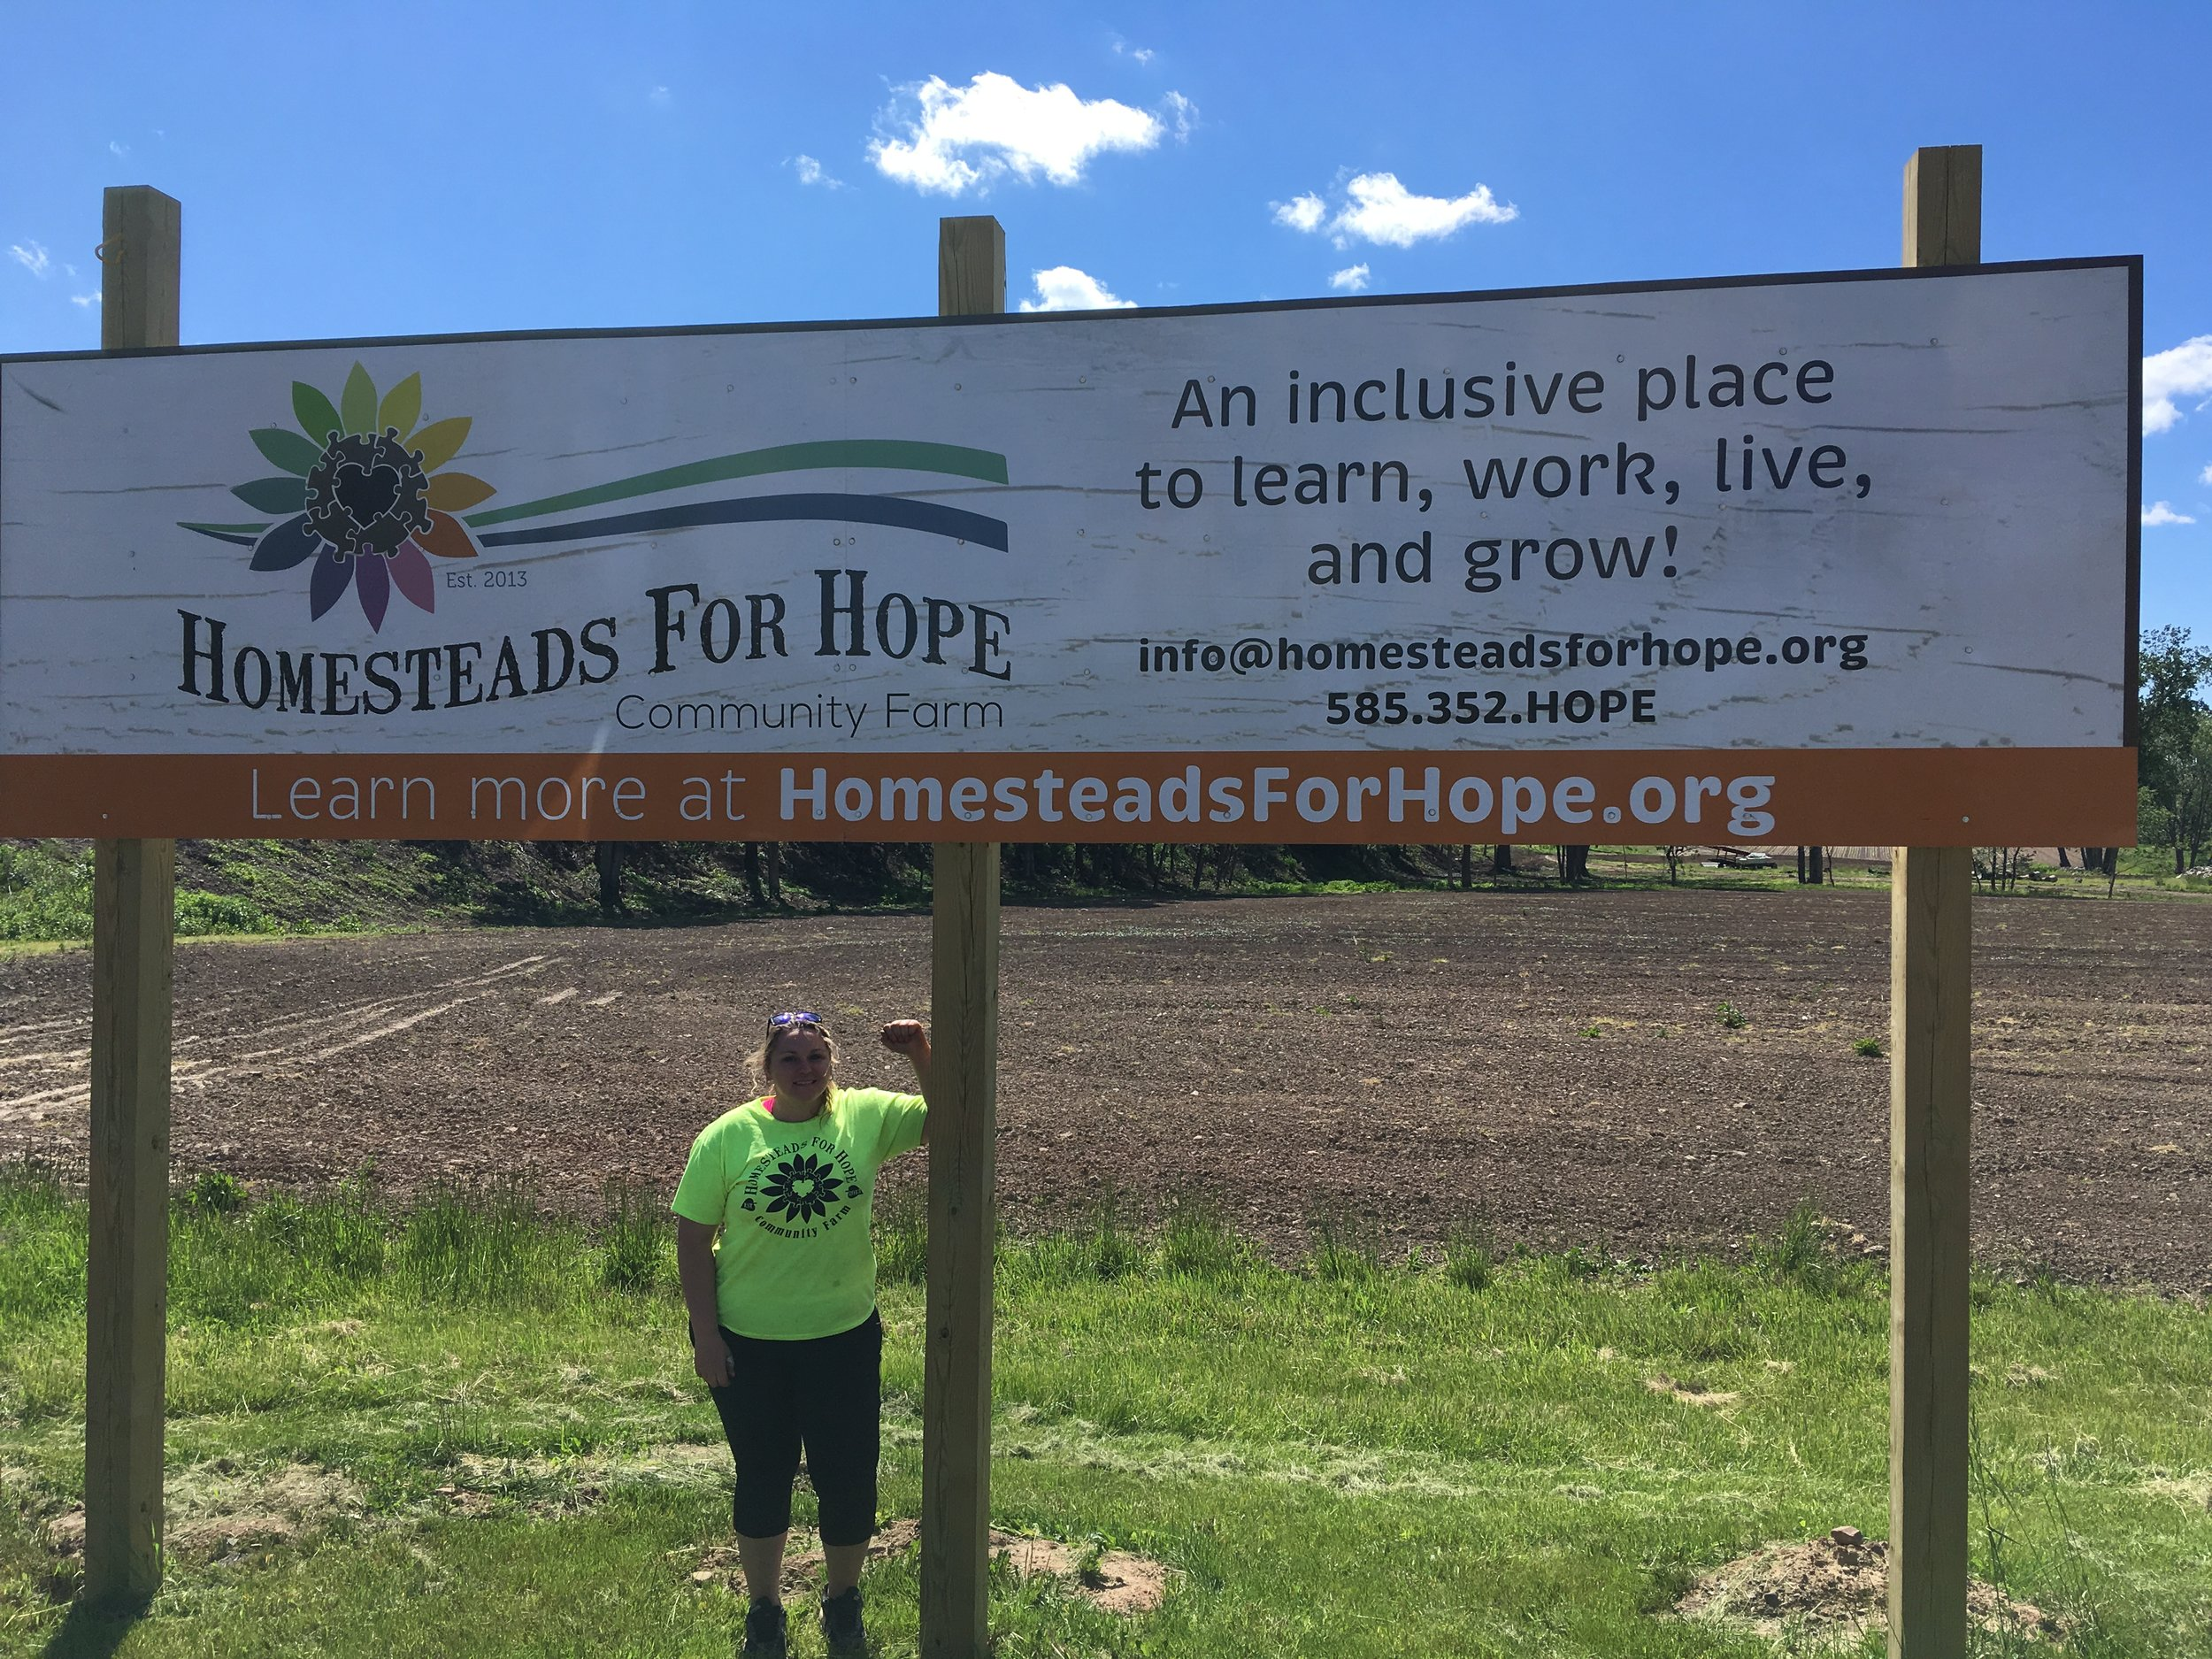 Jenny Brongo @ Homesteads for Hope